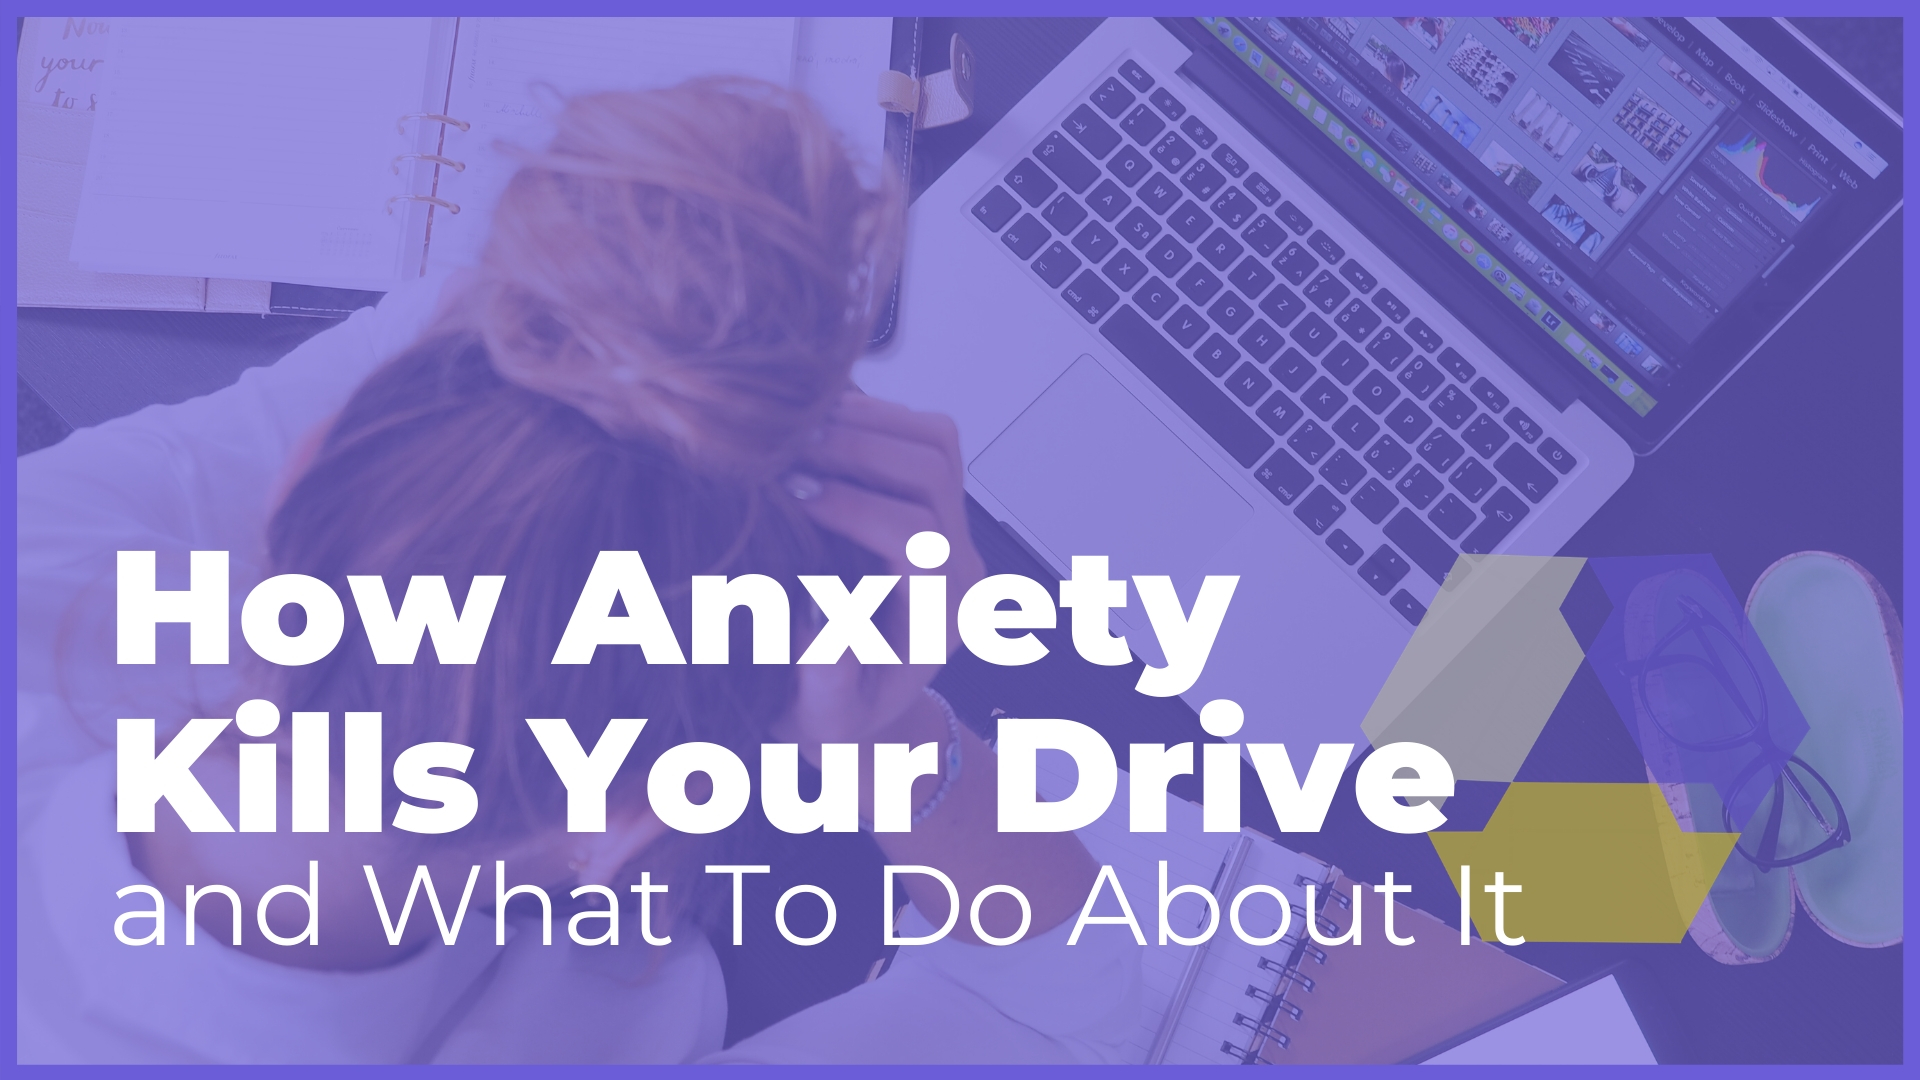 How Anxiety Kills Your Drive